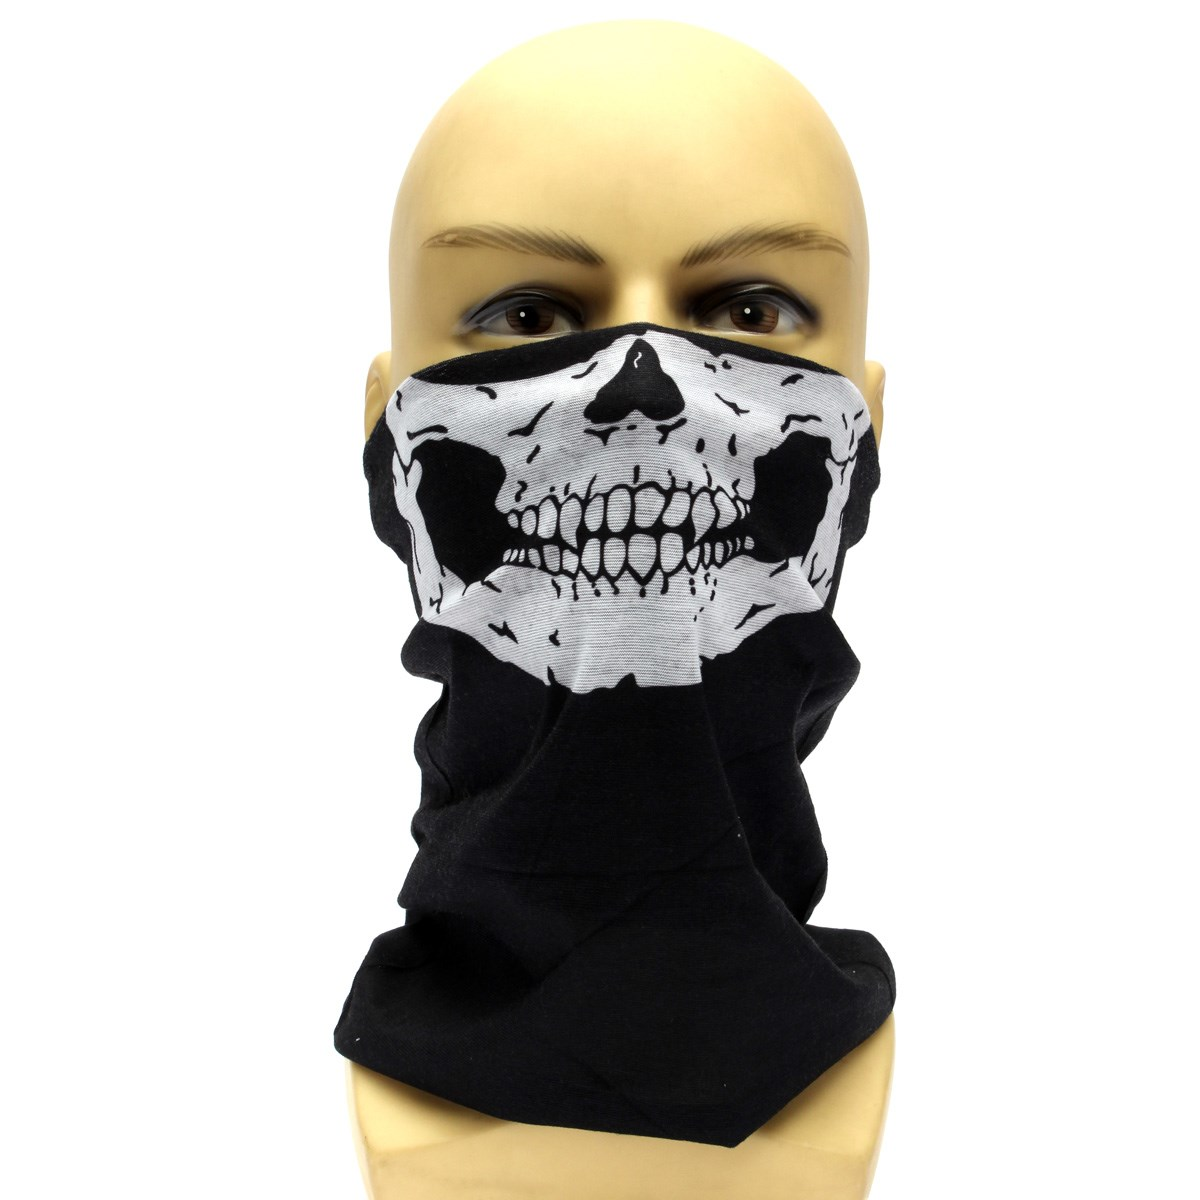 Skeleton Ghost Skull Balaclava Cycling Bike Face Mask Biker Masquerade Halloween Skiing Mask(China (Mainland))